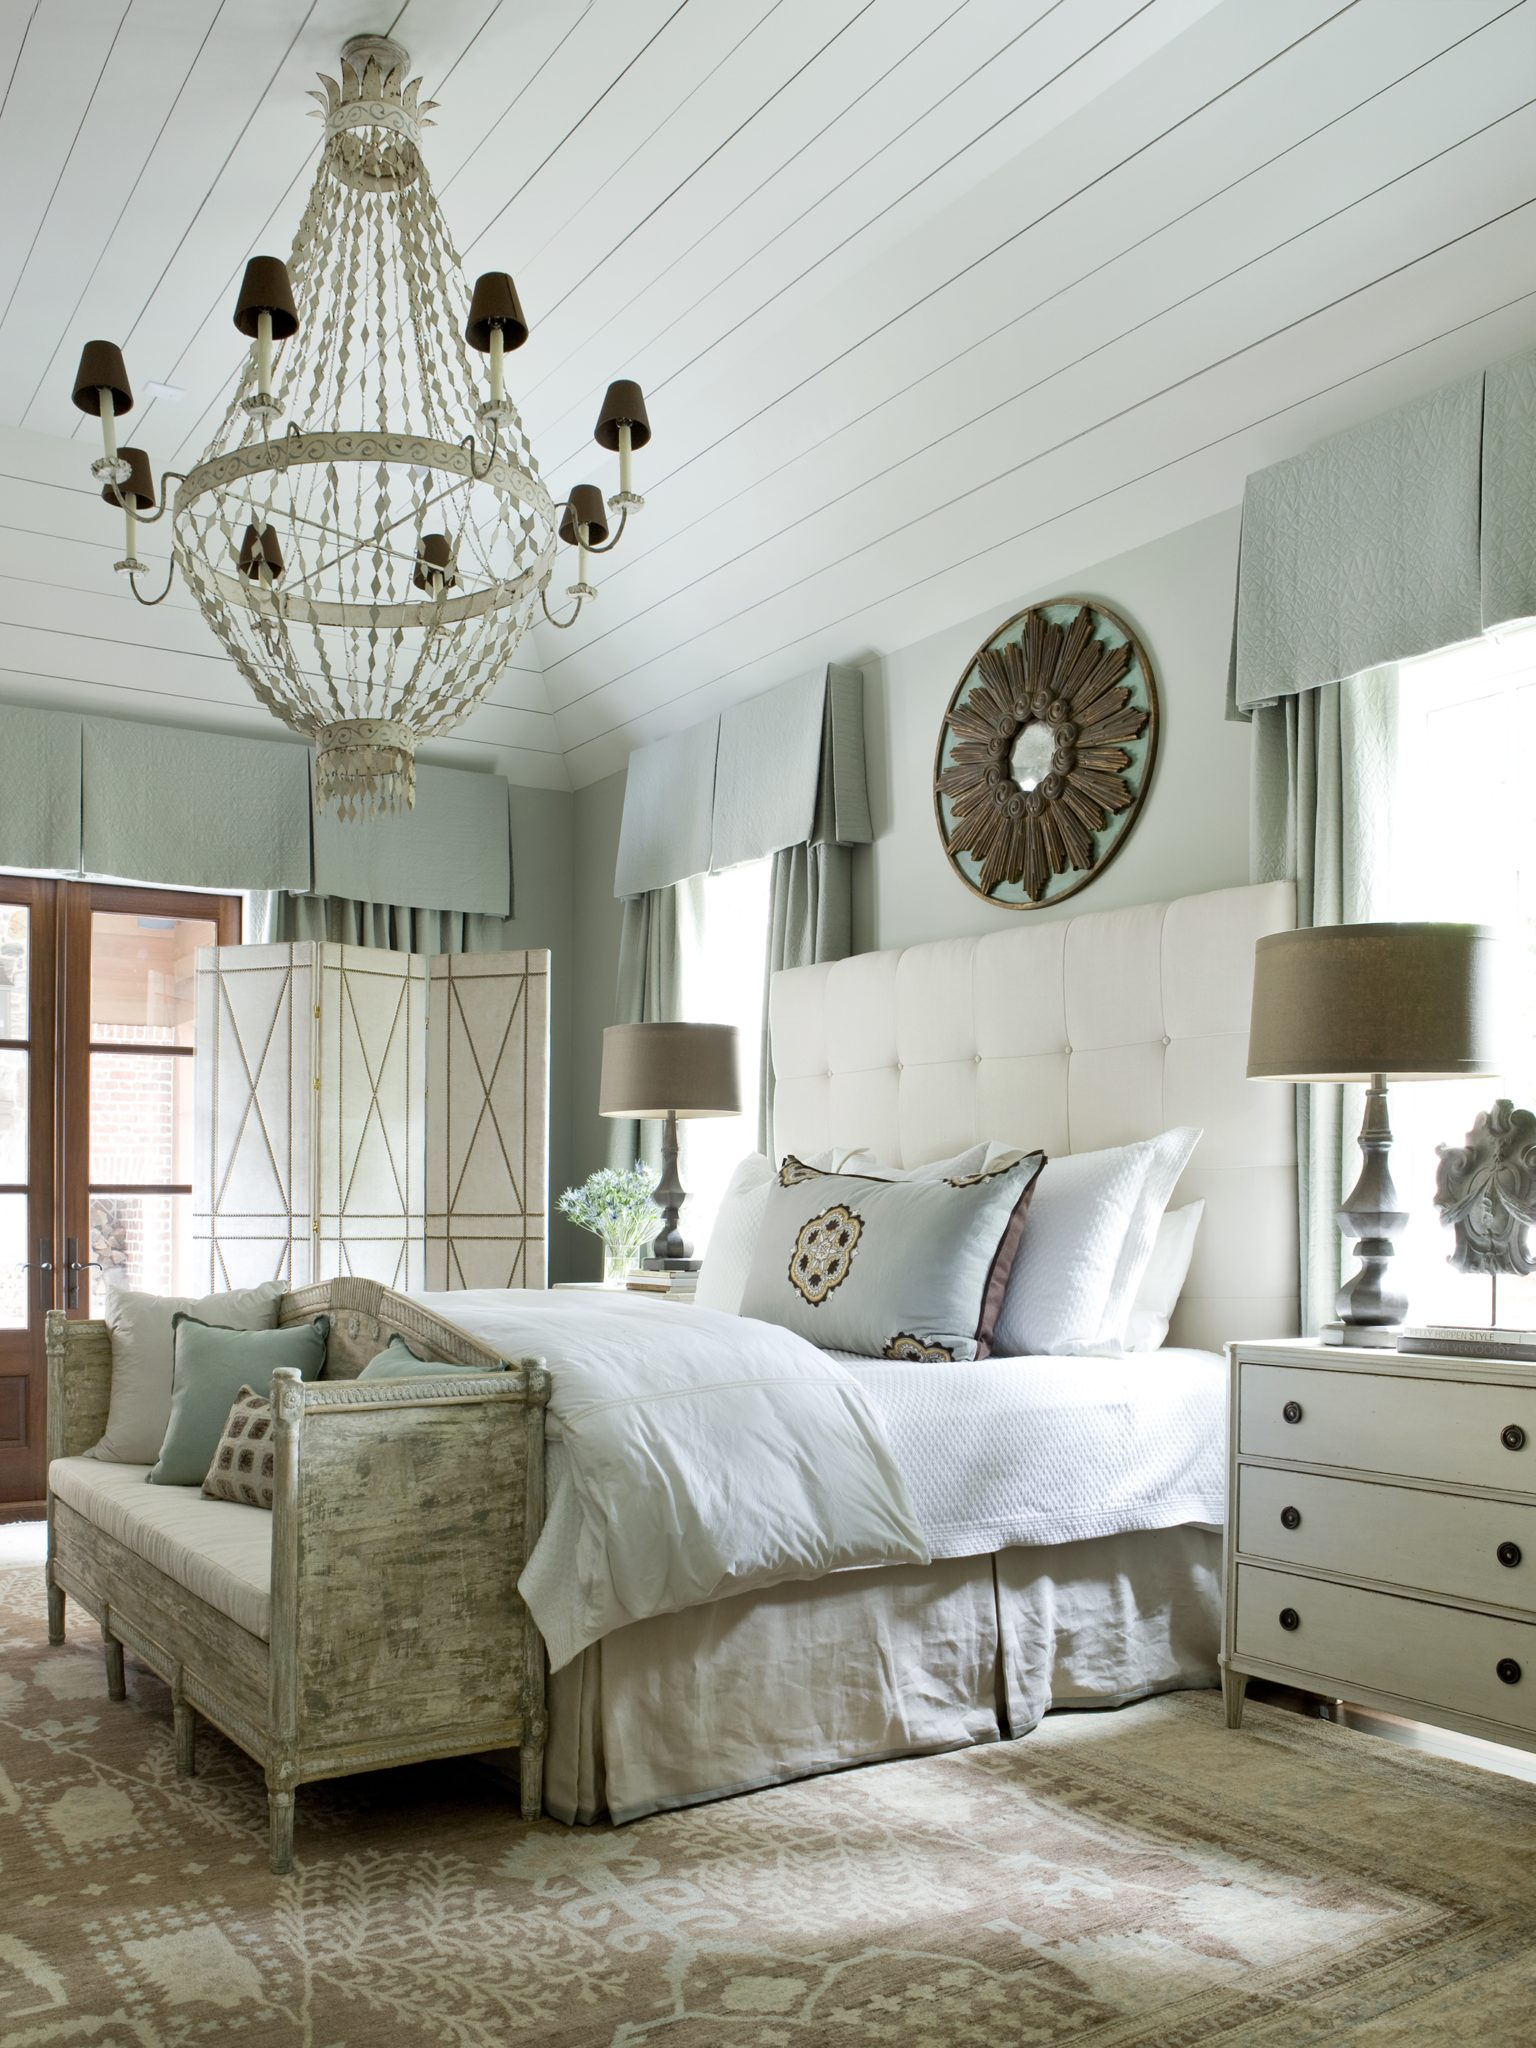 A serene bedroom by Amy Morris